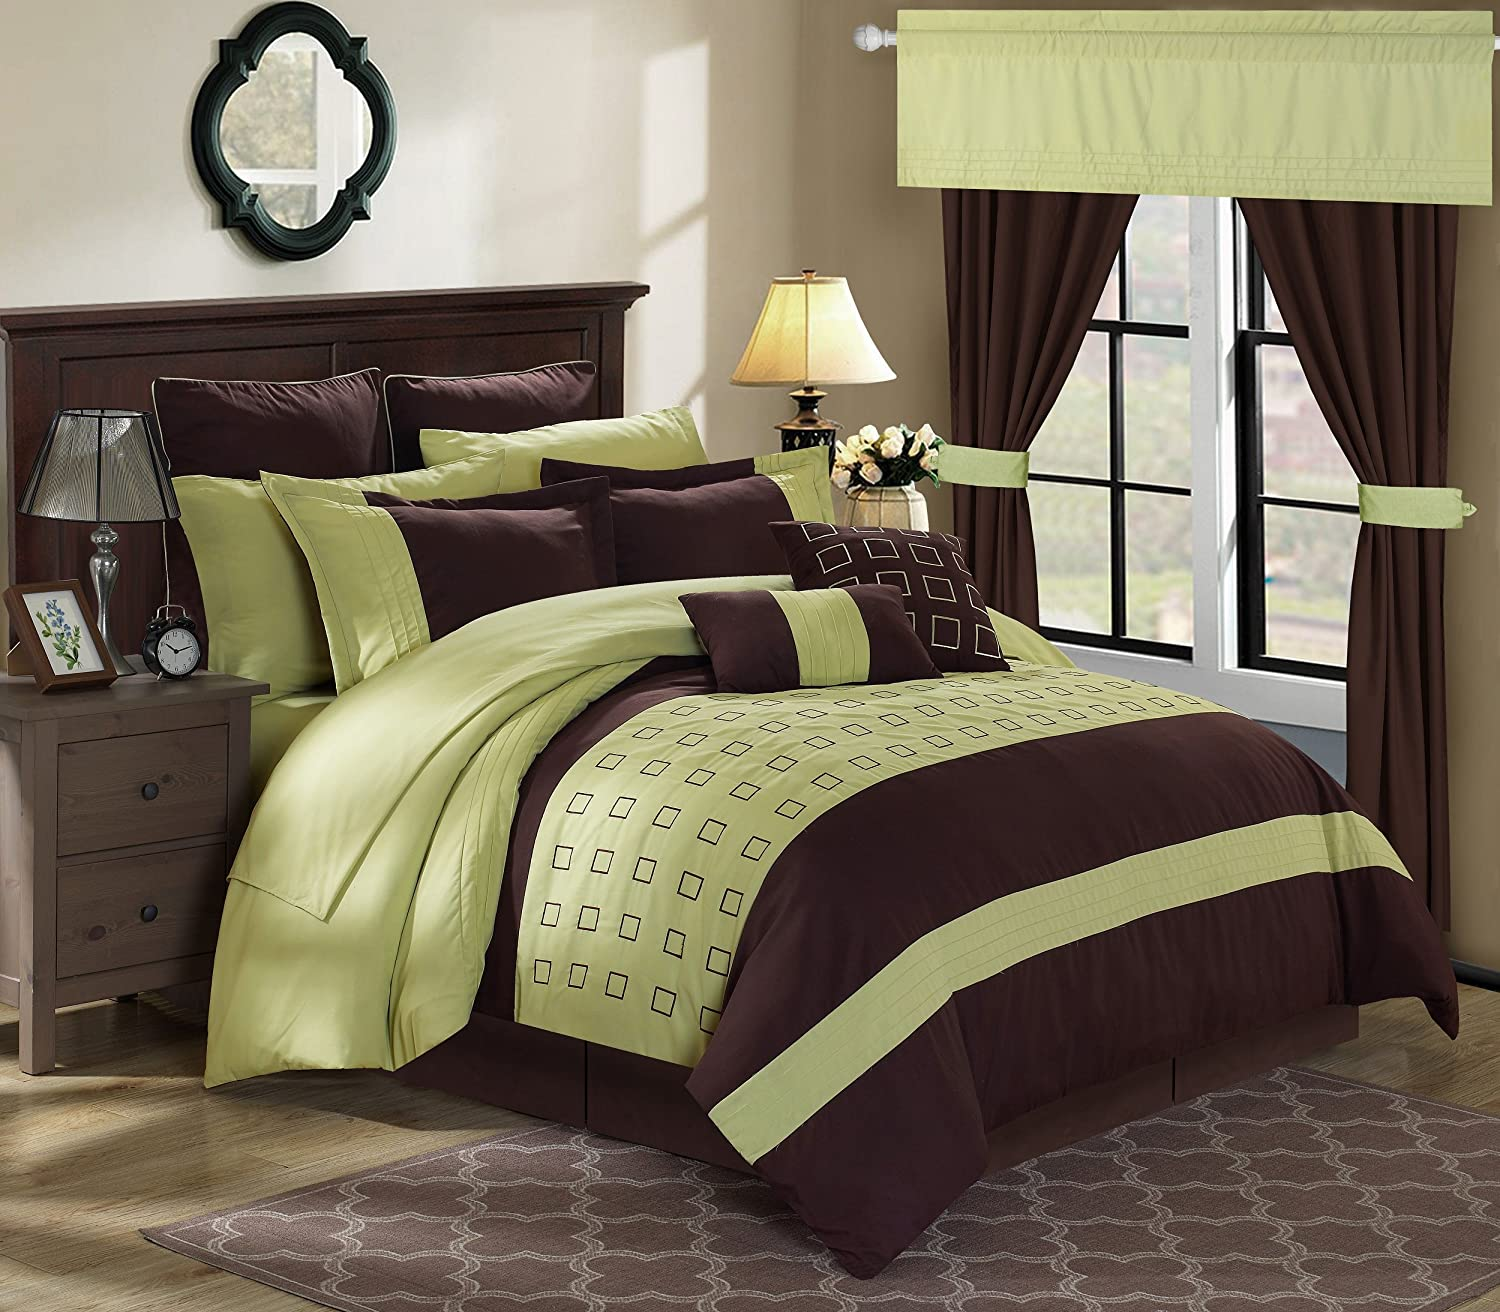 Chic Home 24 Piece Lorde Complete Embroidery Comforter Set